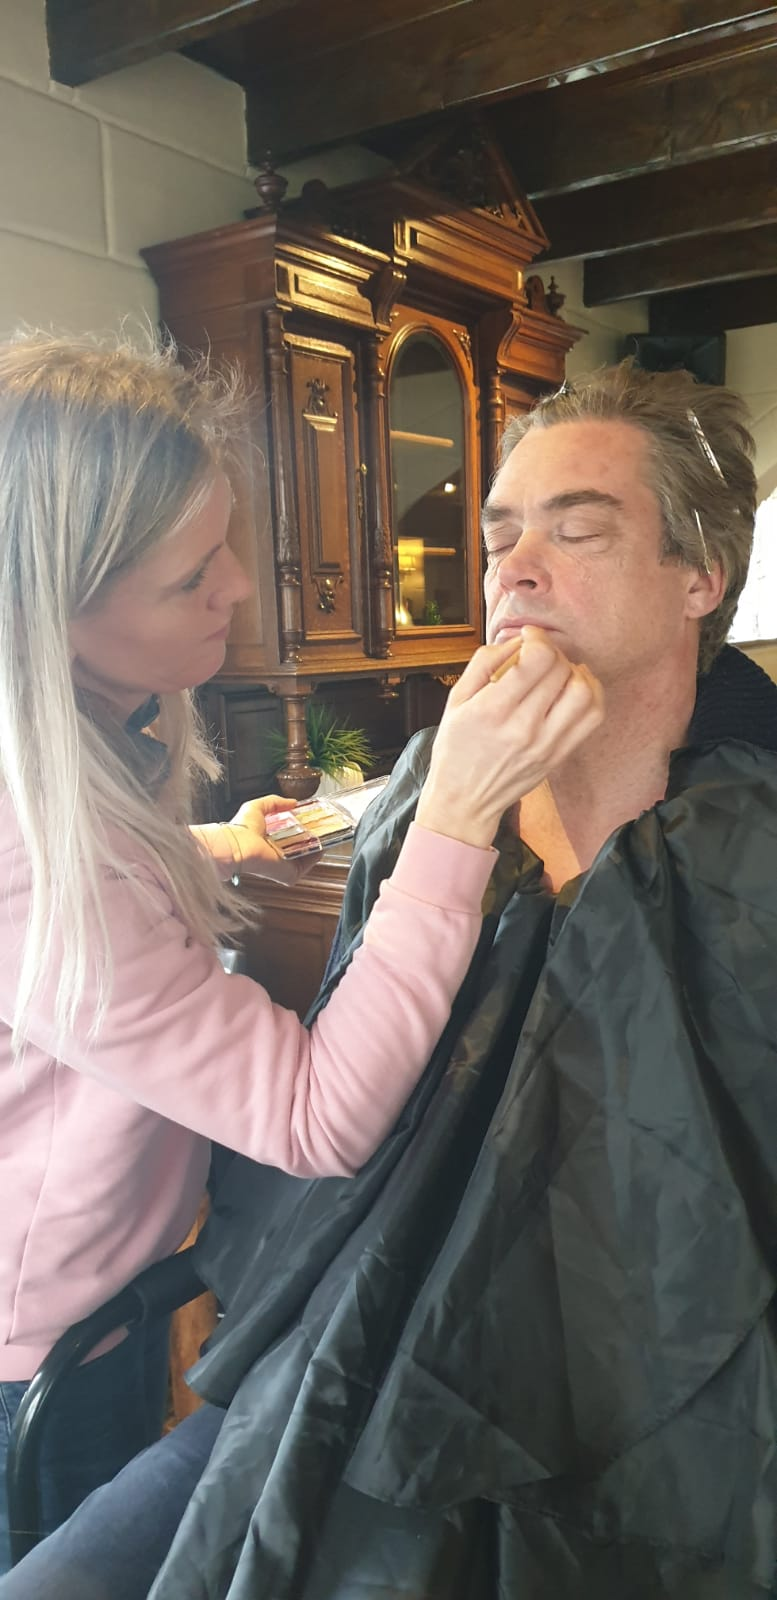 Special Make up Artist Carola Brockhoff creating old age on Ernst ter Linden for Bavaria commercial